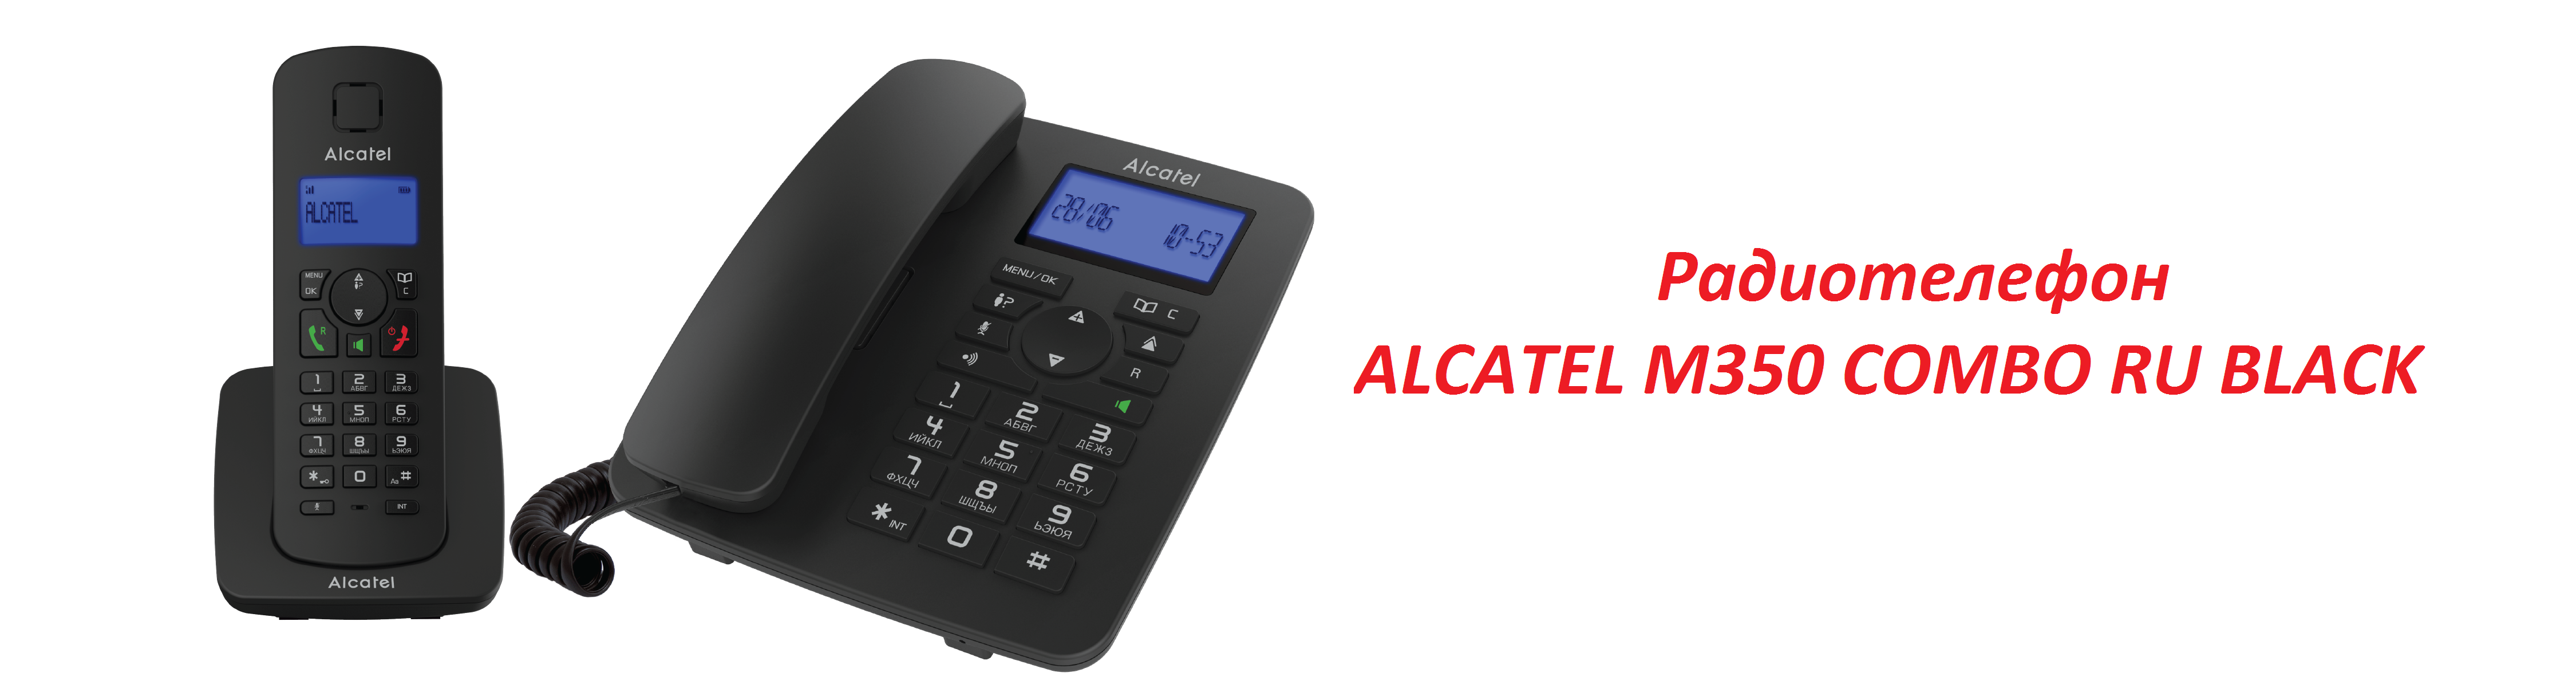 ALCATEL M350 COMBO RU BLACK